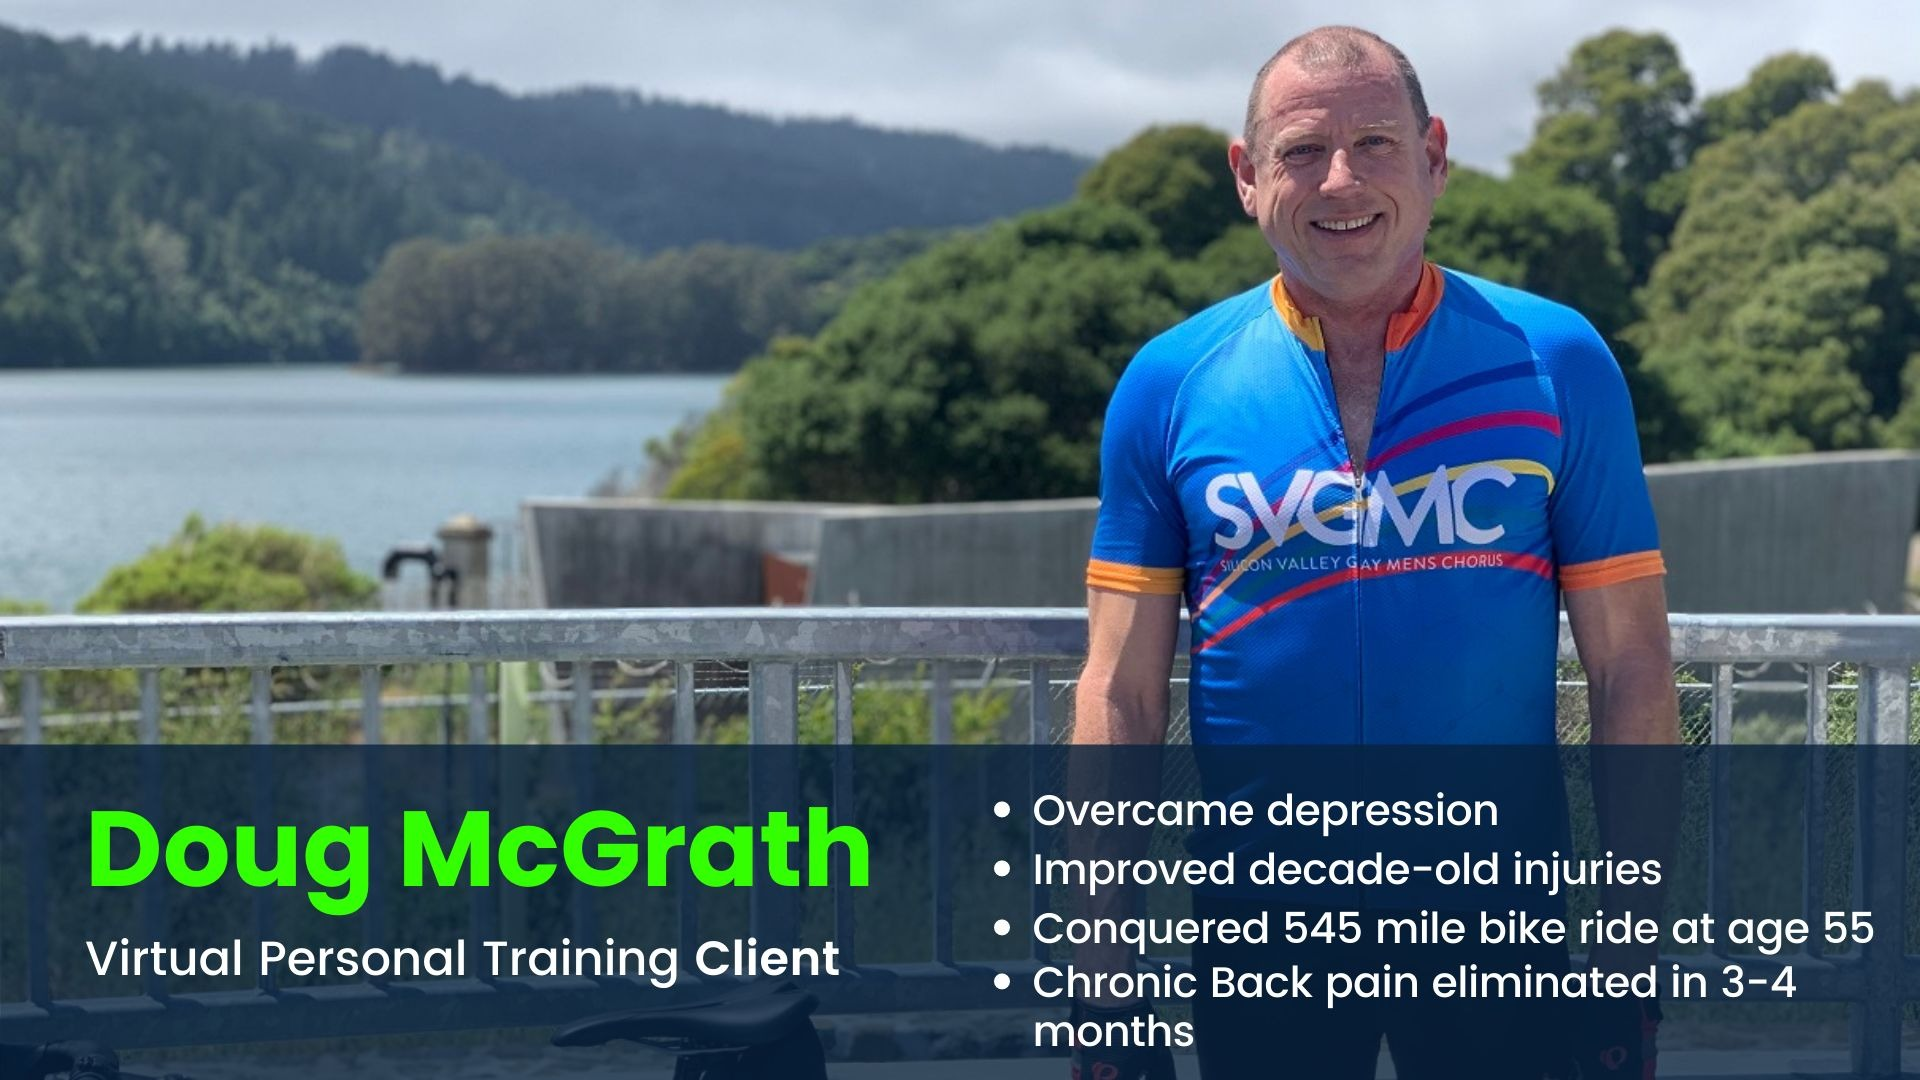 Virtual Training client smiling on a bike ride at age 55